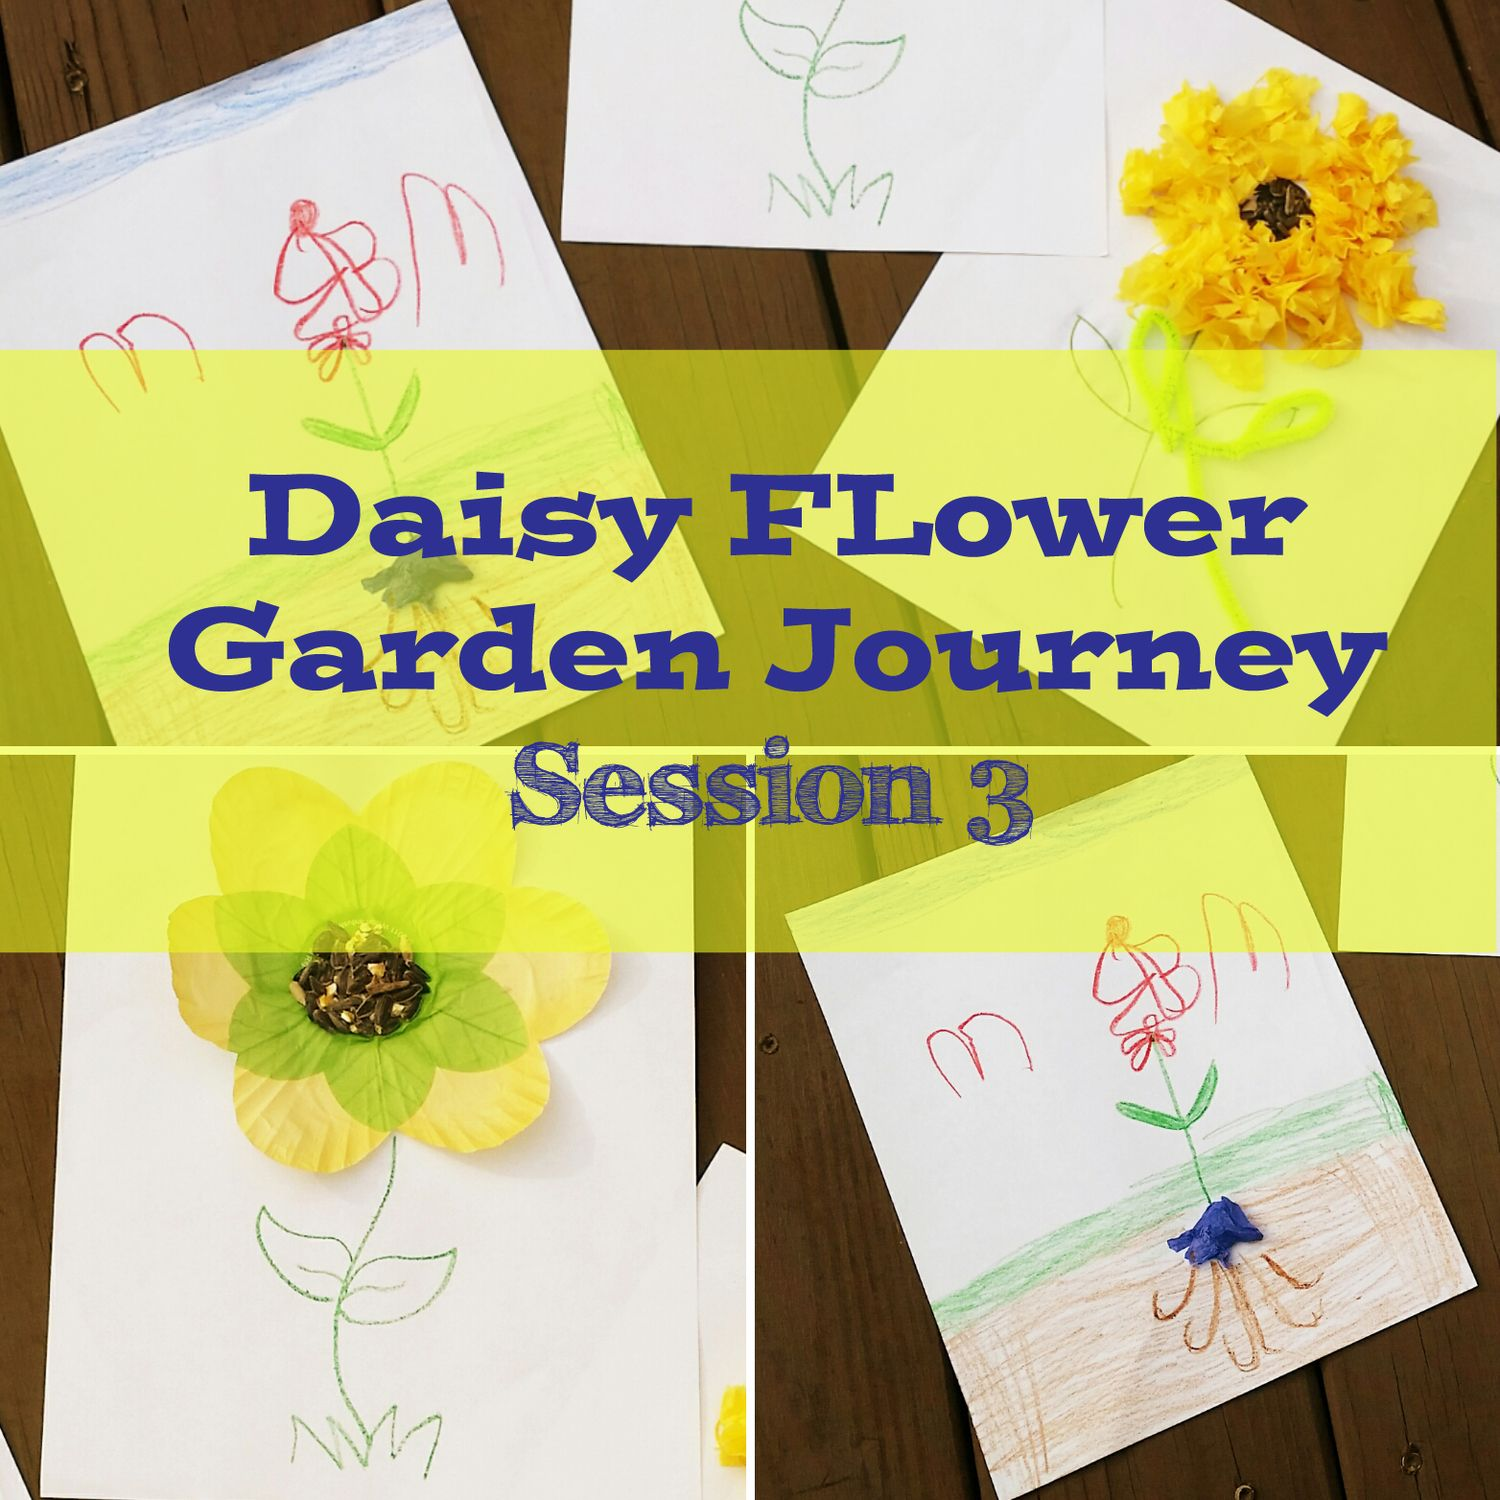 Daisy flower garden journey session 3 daisy girl scouts and daisy daisy flower garden journey session 3 mighty girls rock izmirmasajfo